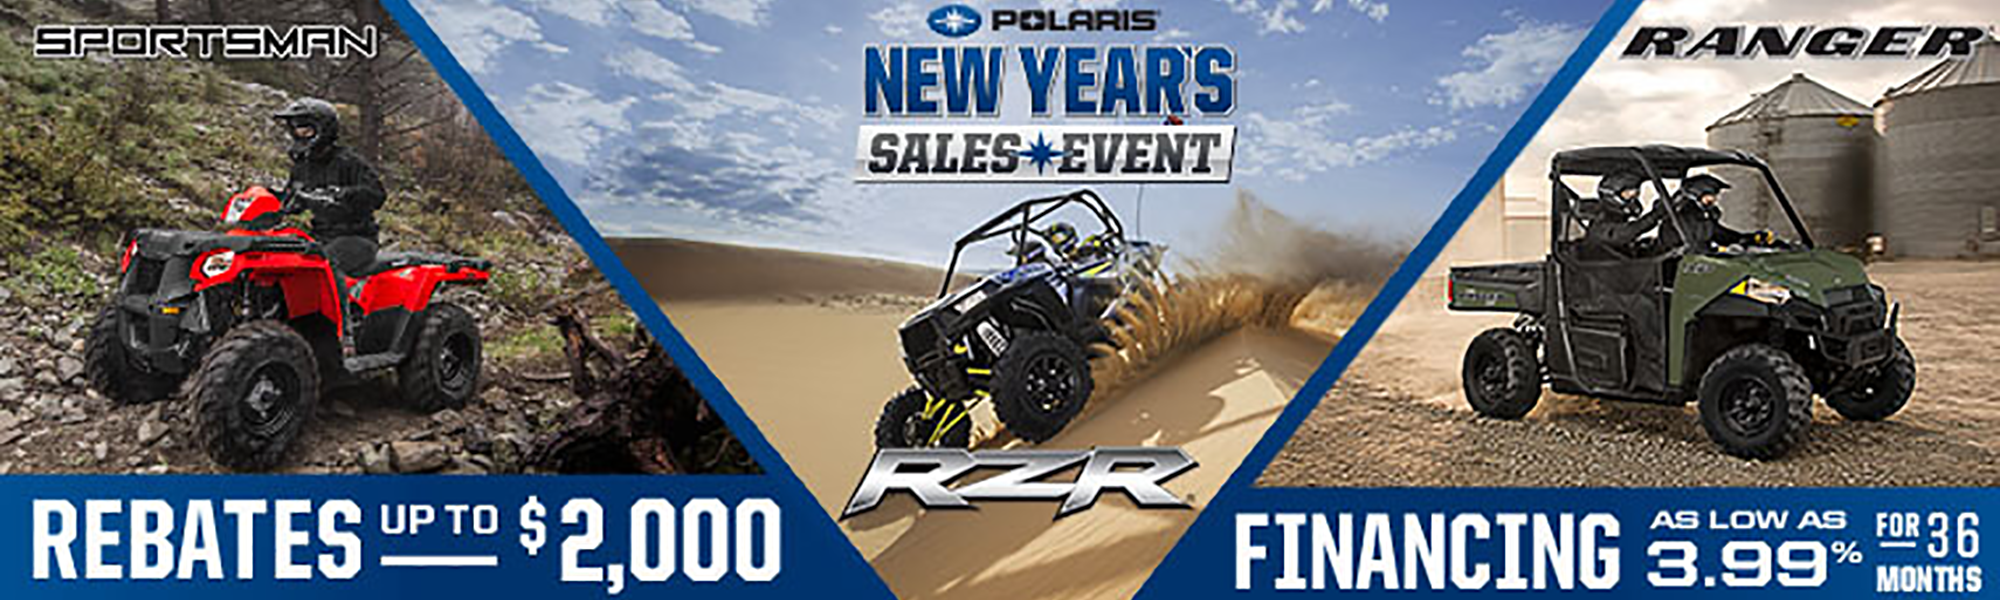 New Years Sales Event